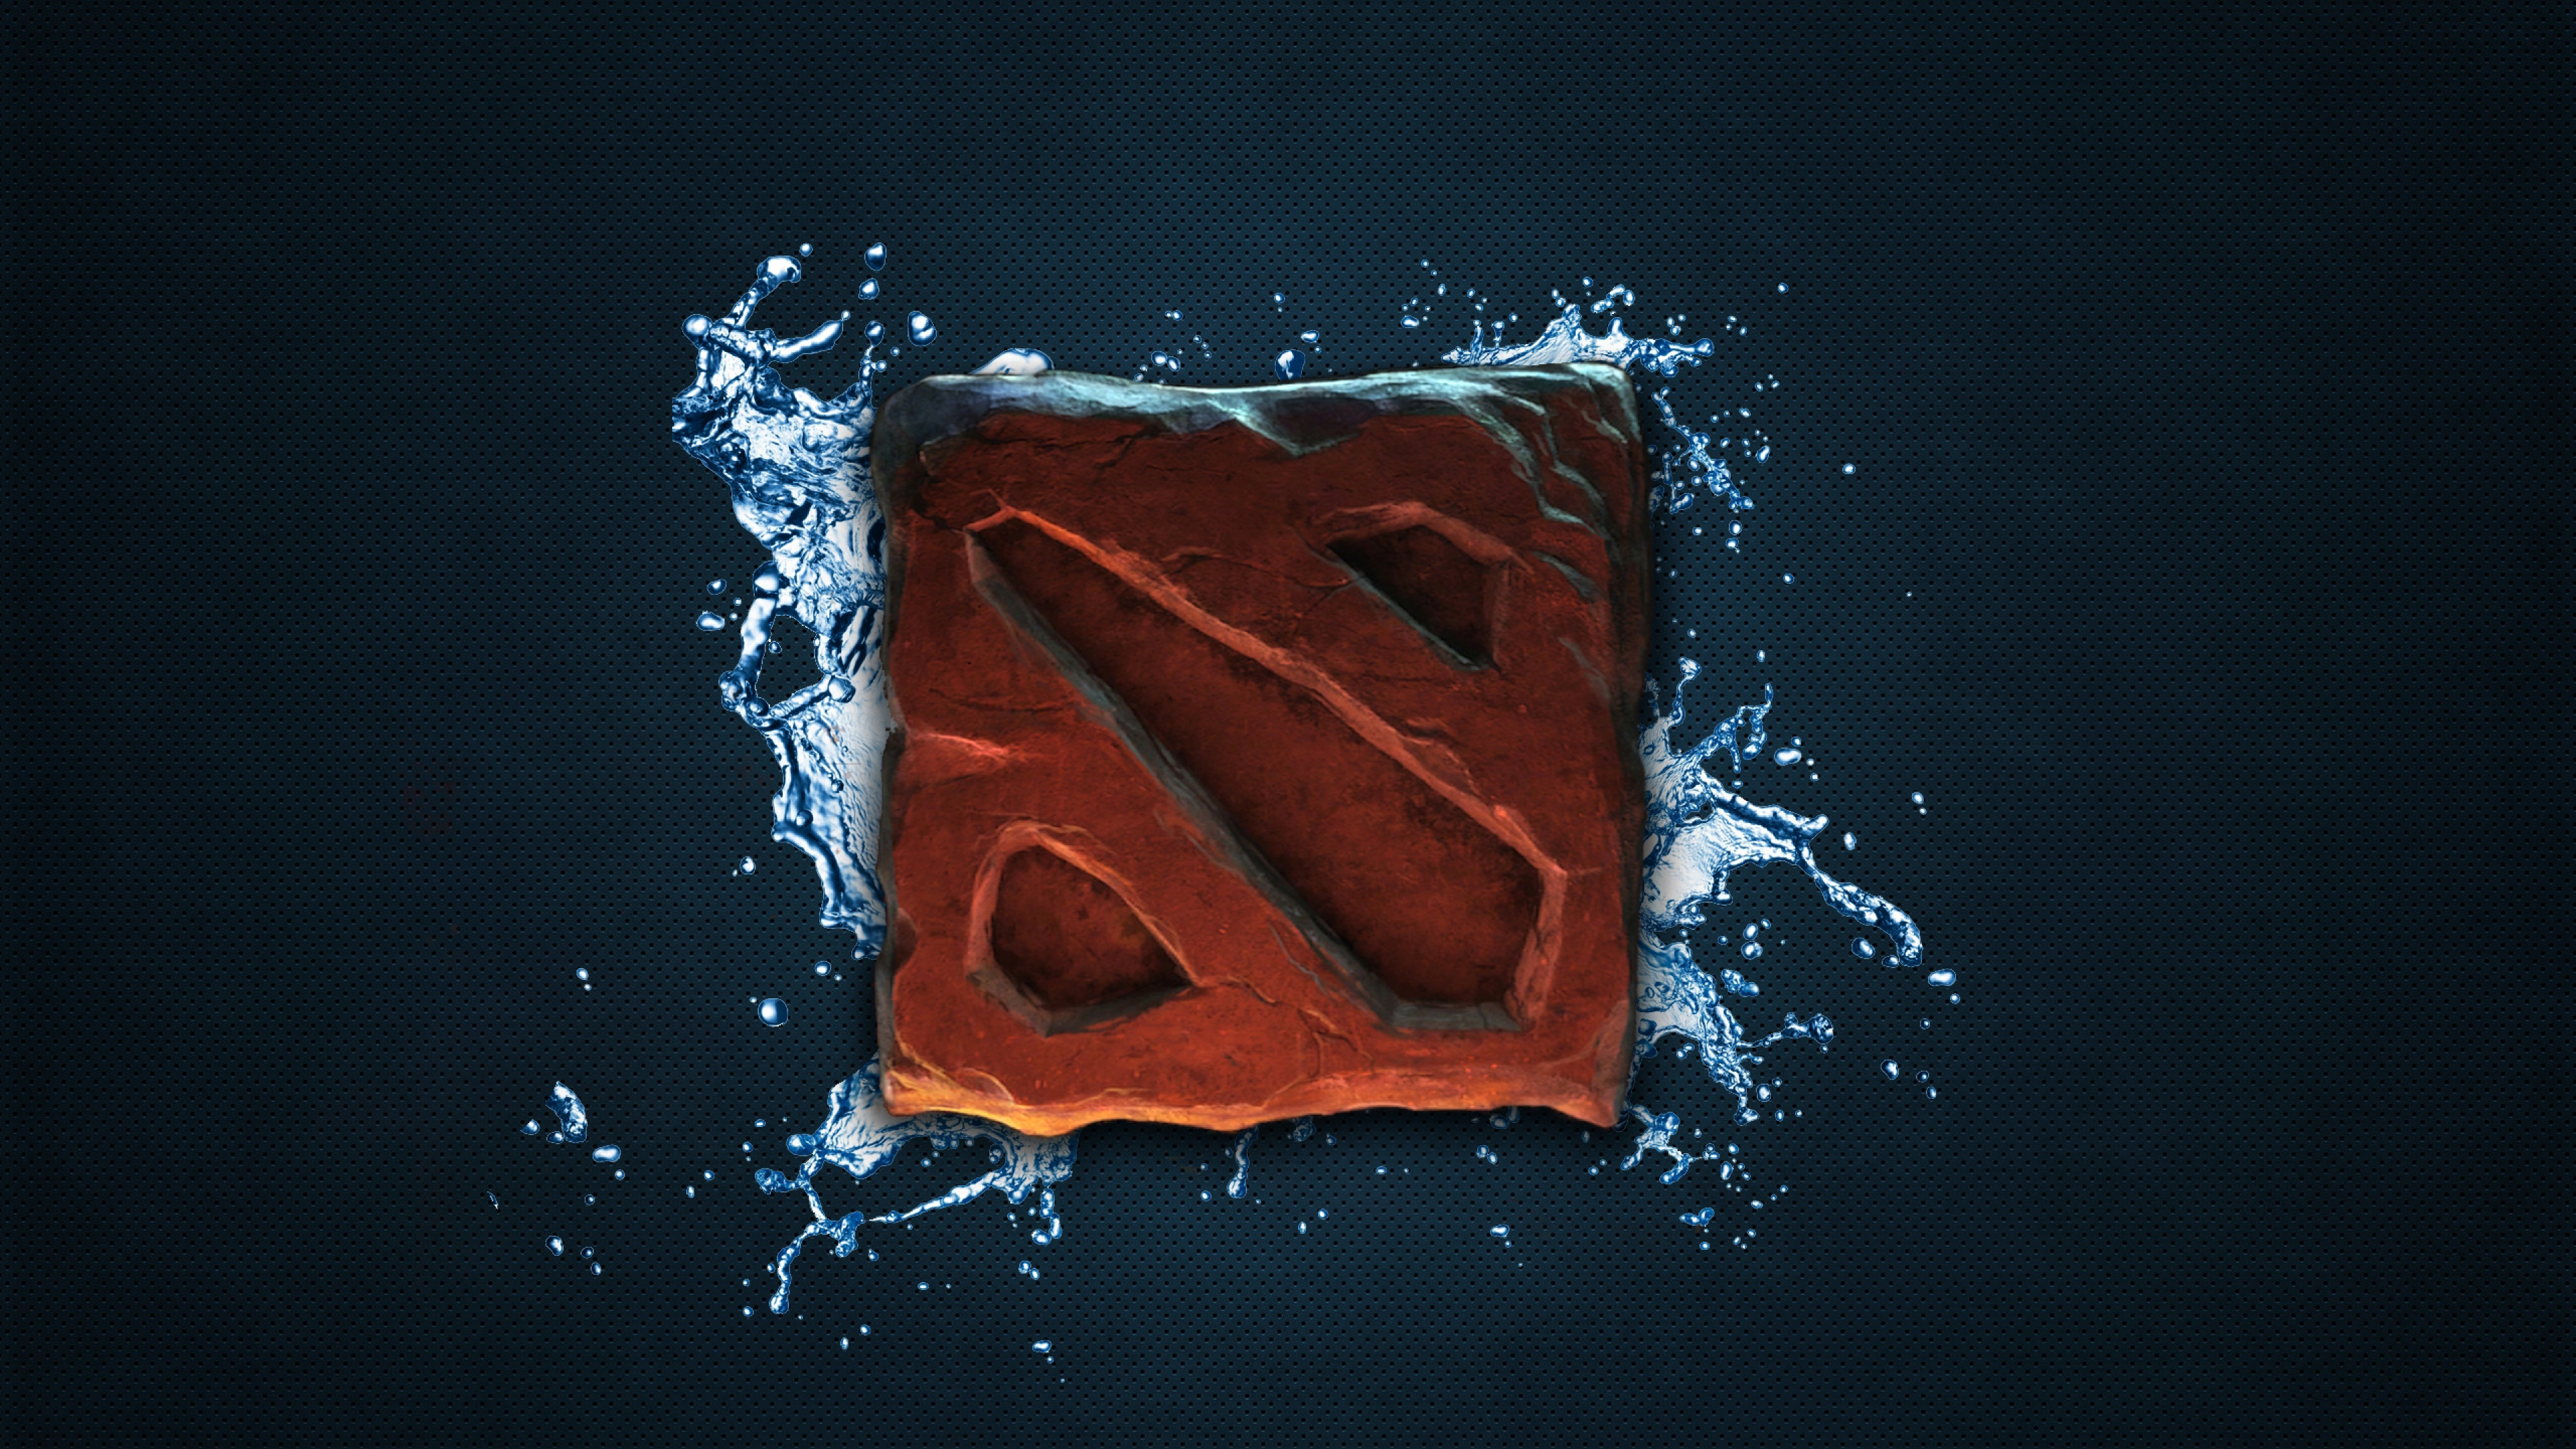 dota 2 logo art 1535966480 - Dota 2 Logo Art - logo wallpapers, games wallpapers, dota wallpapers, dota 2 wallpapers, art wallpapers